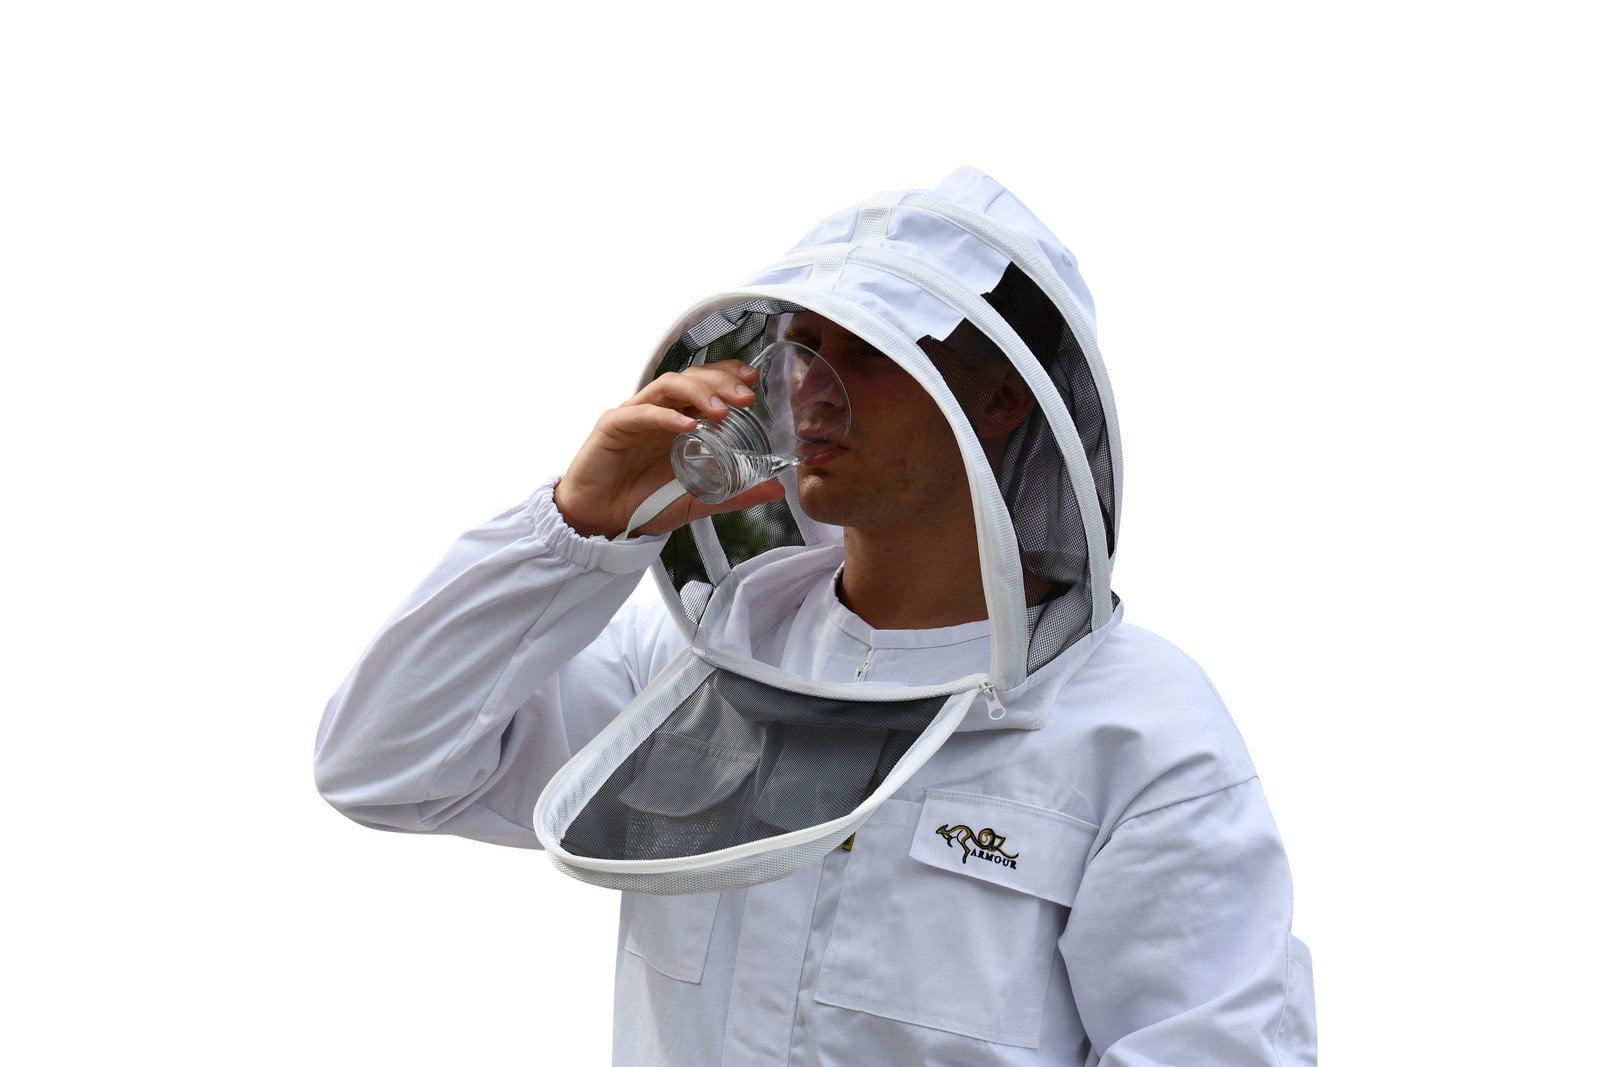 OZ ARMOUR Poly Cotton Beekeeping Suit With Fencing Veil,Beekeeping,beekeeping gear,oz armour